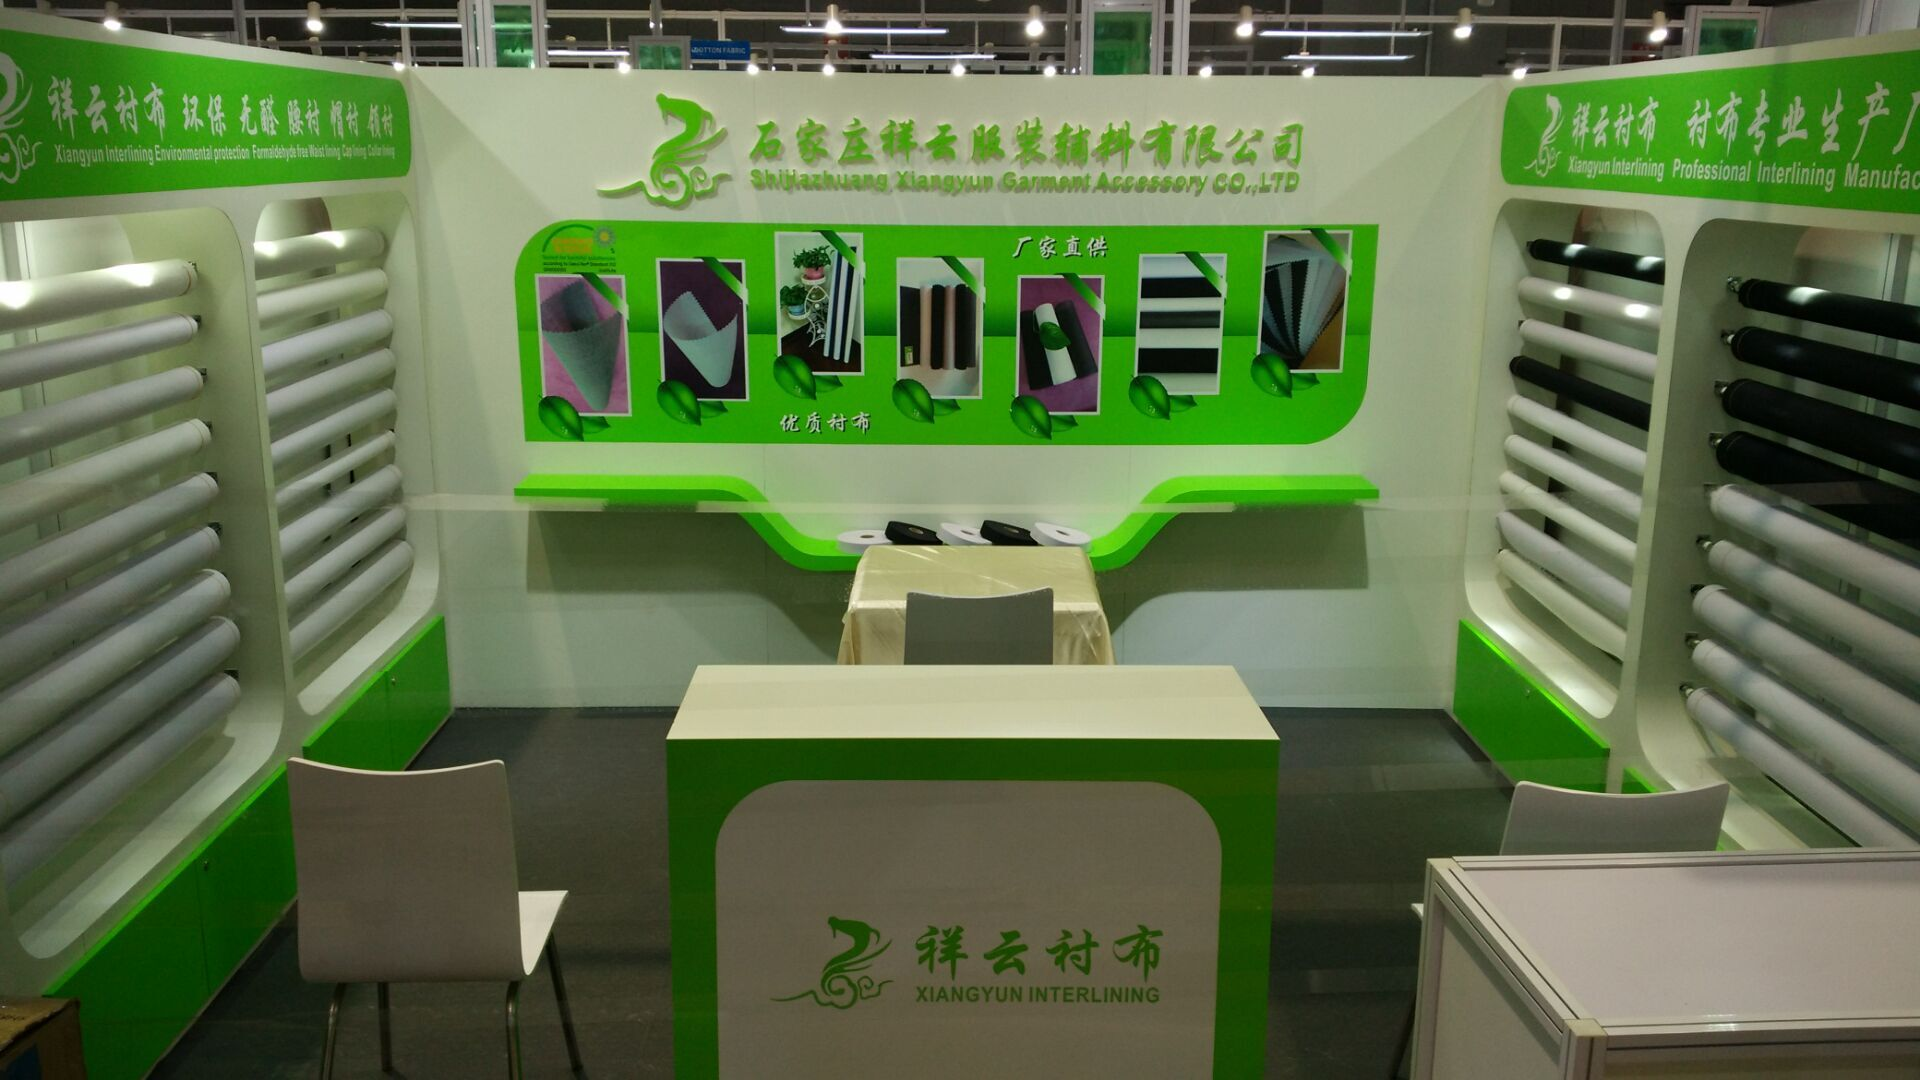 Shijiazhuang Xiangyun Garment Accessory CO., LTD. Main Image